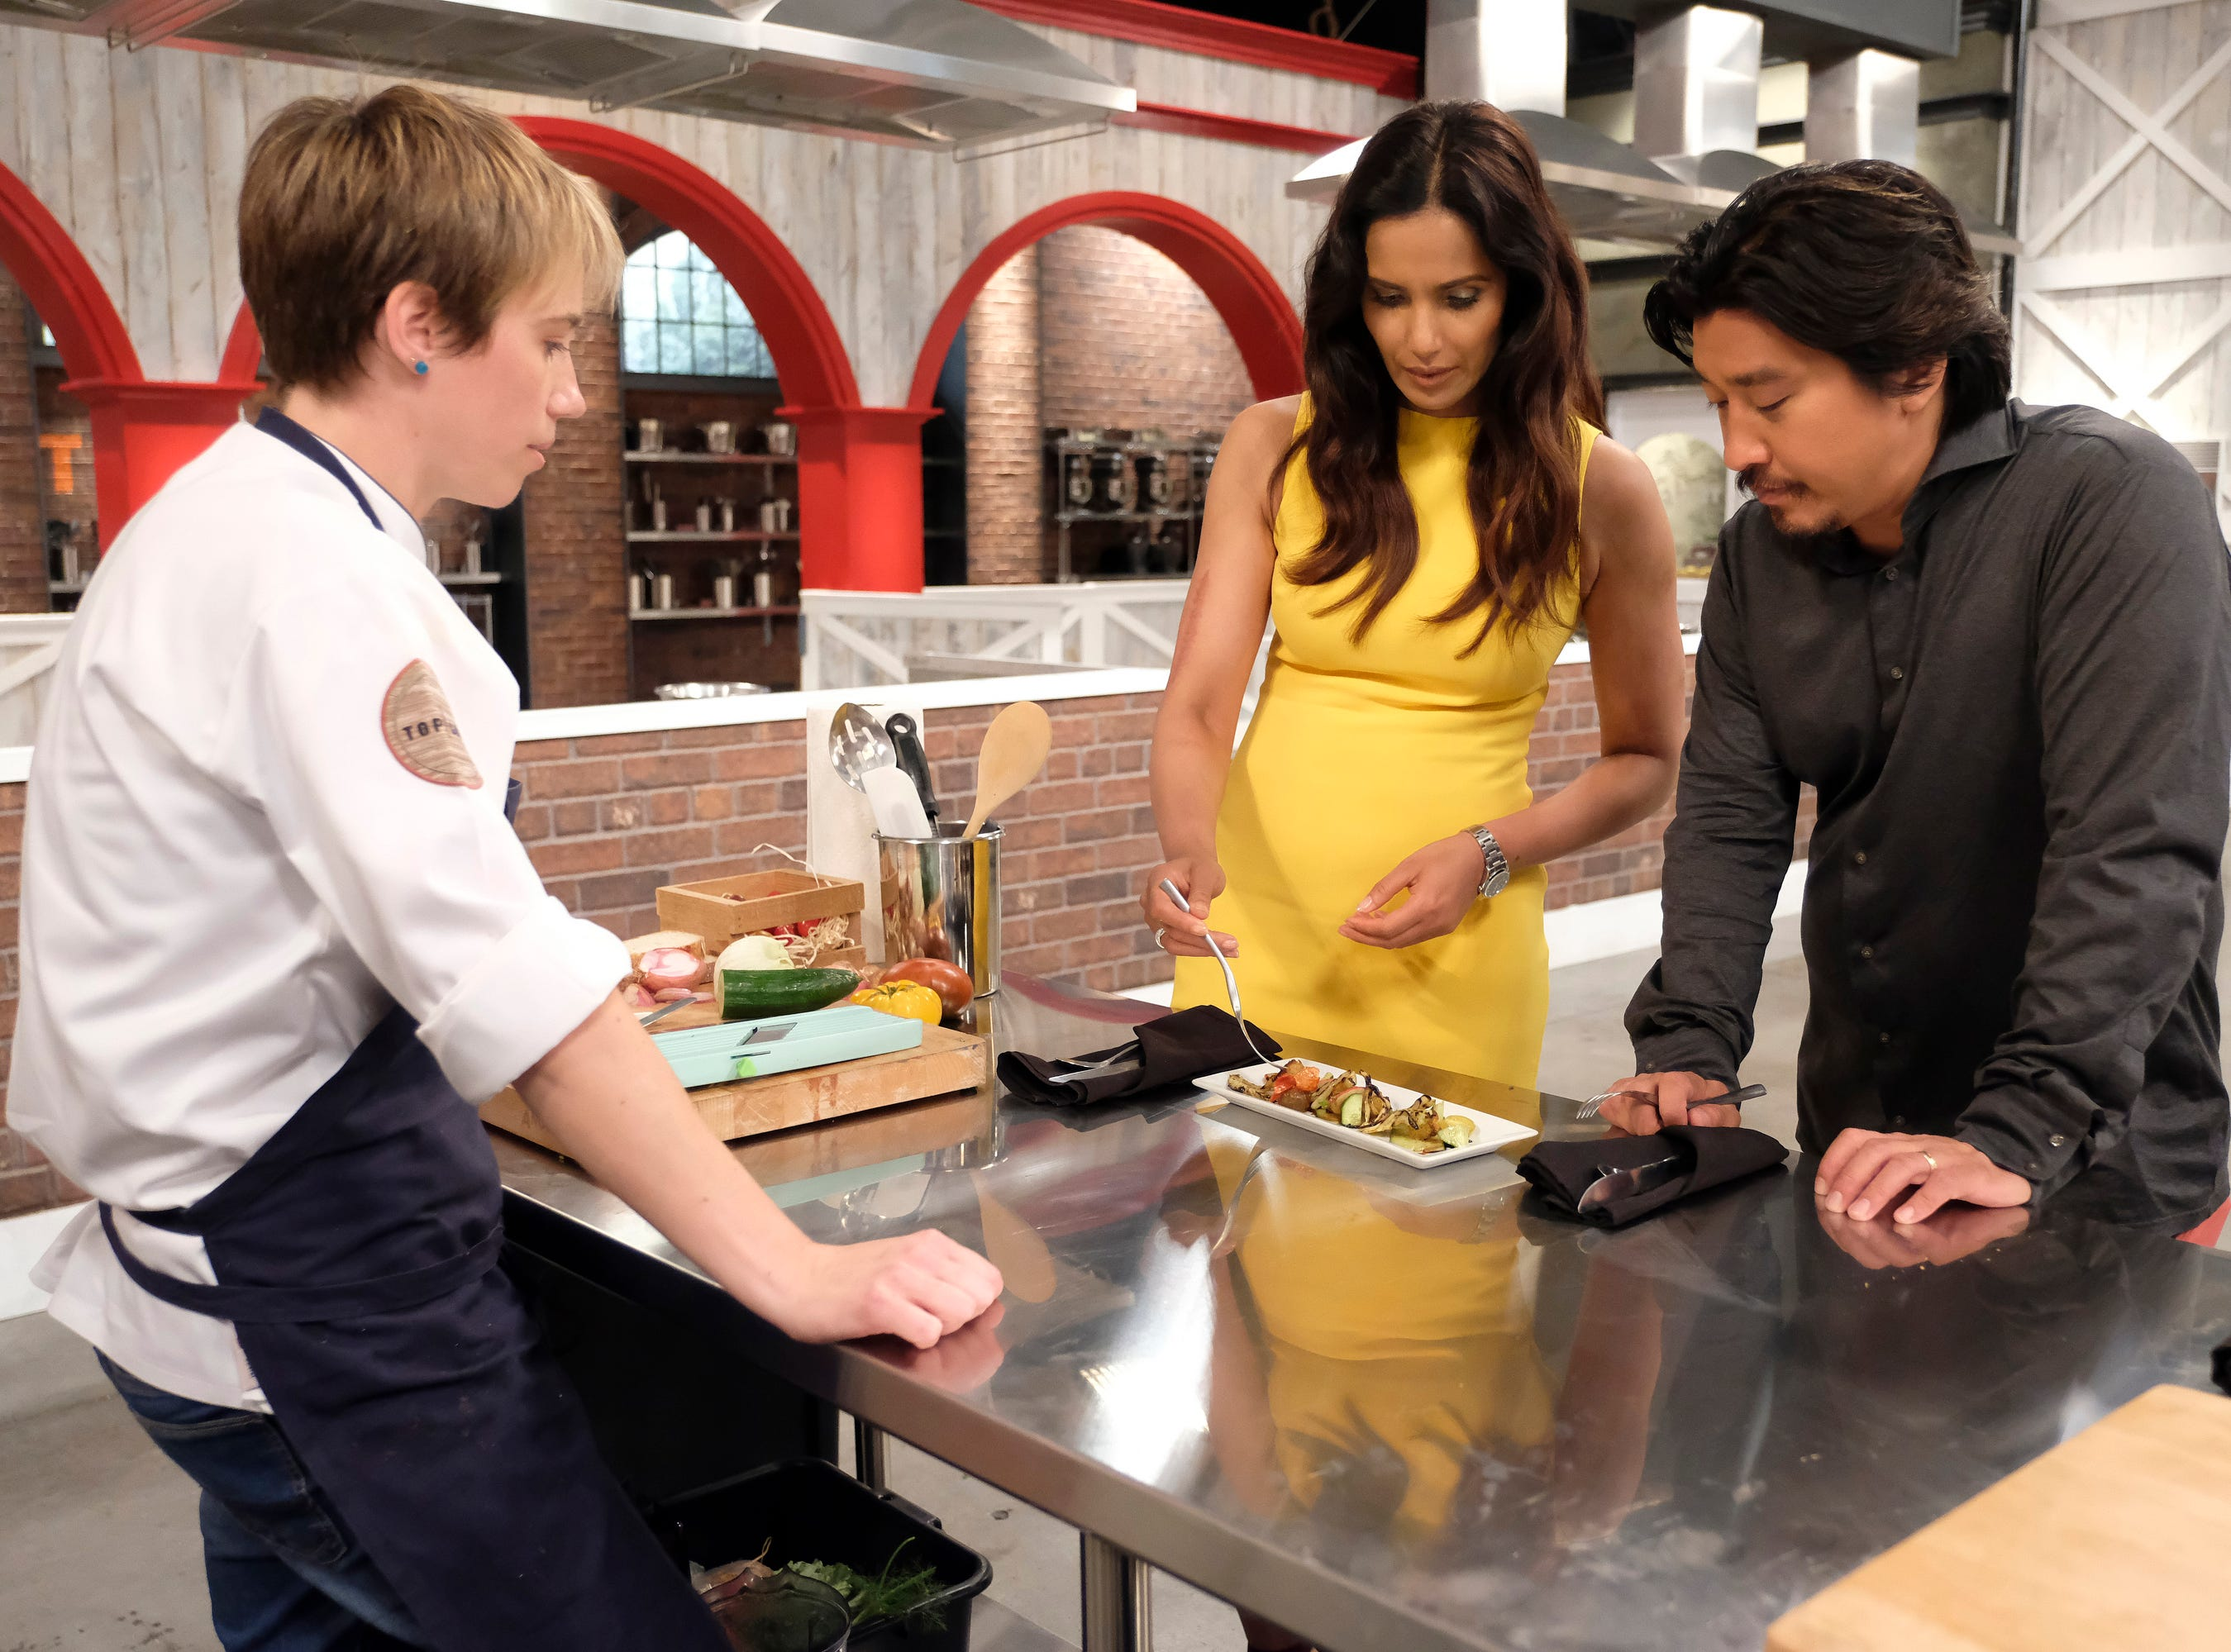 (From left to right): Contestant Adrienne Wright waits for freedback fromhost  Padma Lakshmi and Louisville chef and 'Top chef' alum Ed Lee on episode 10 of Bravo's 'Top Chef: Kentucky' season.